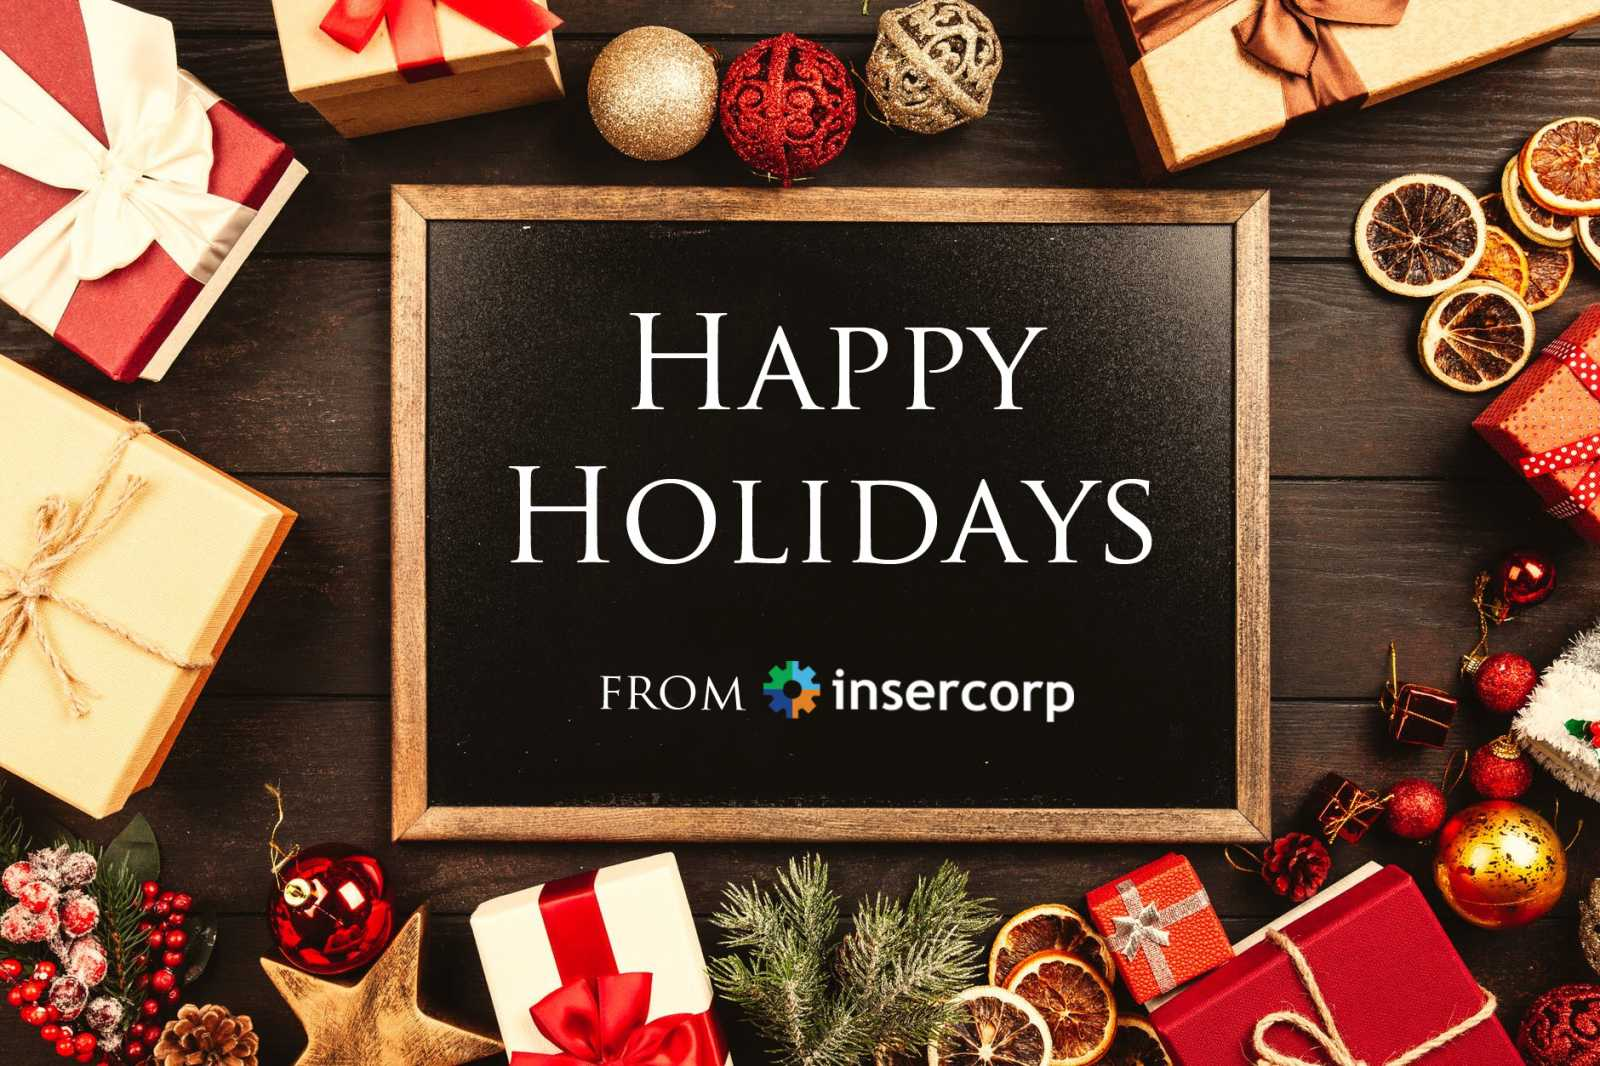 Happy Holidays from Insercorp!